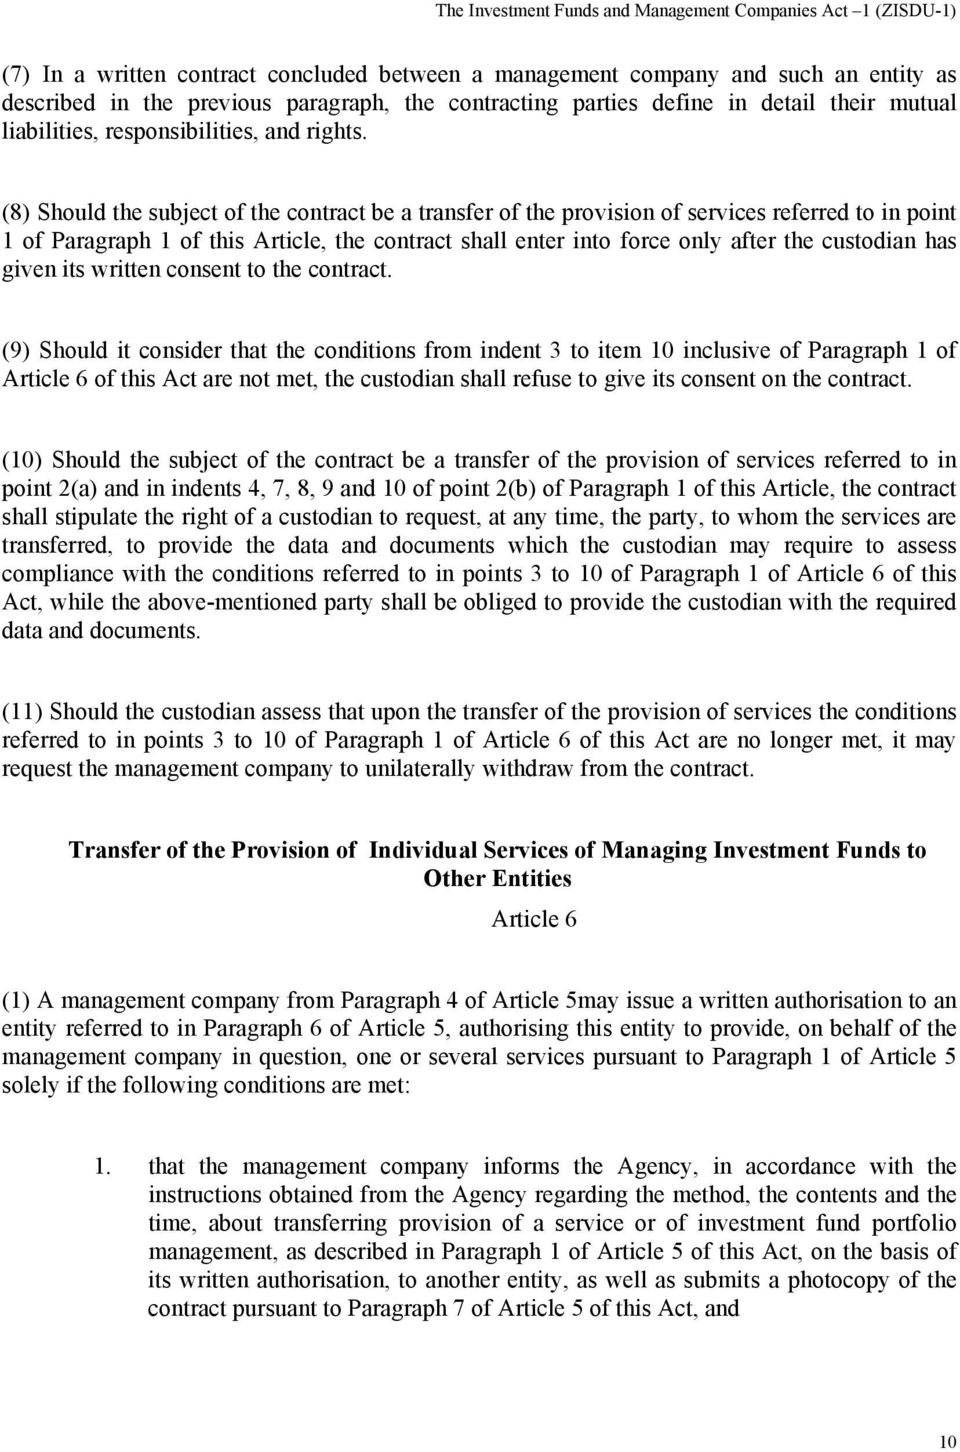 (8) Should the subject of the contract be a transfer of the provision of services referred to in point 1 of Paragraph 1 of this Article, the contract shall enter into force only after the custodian